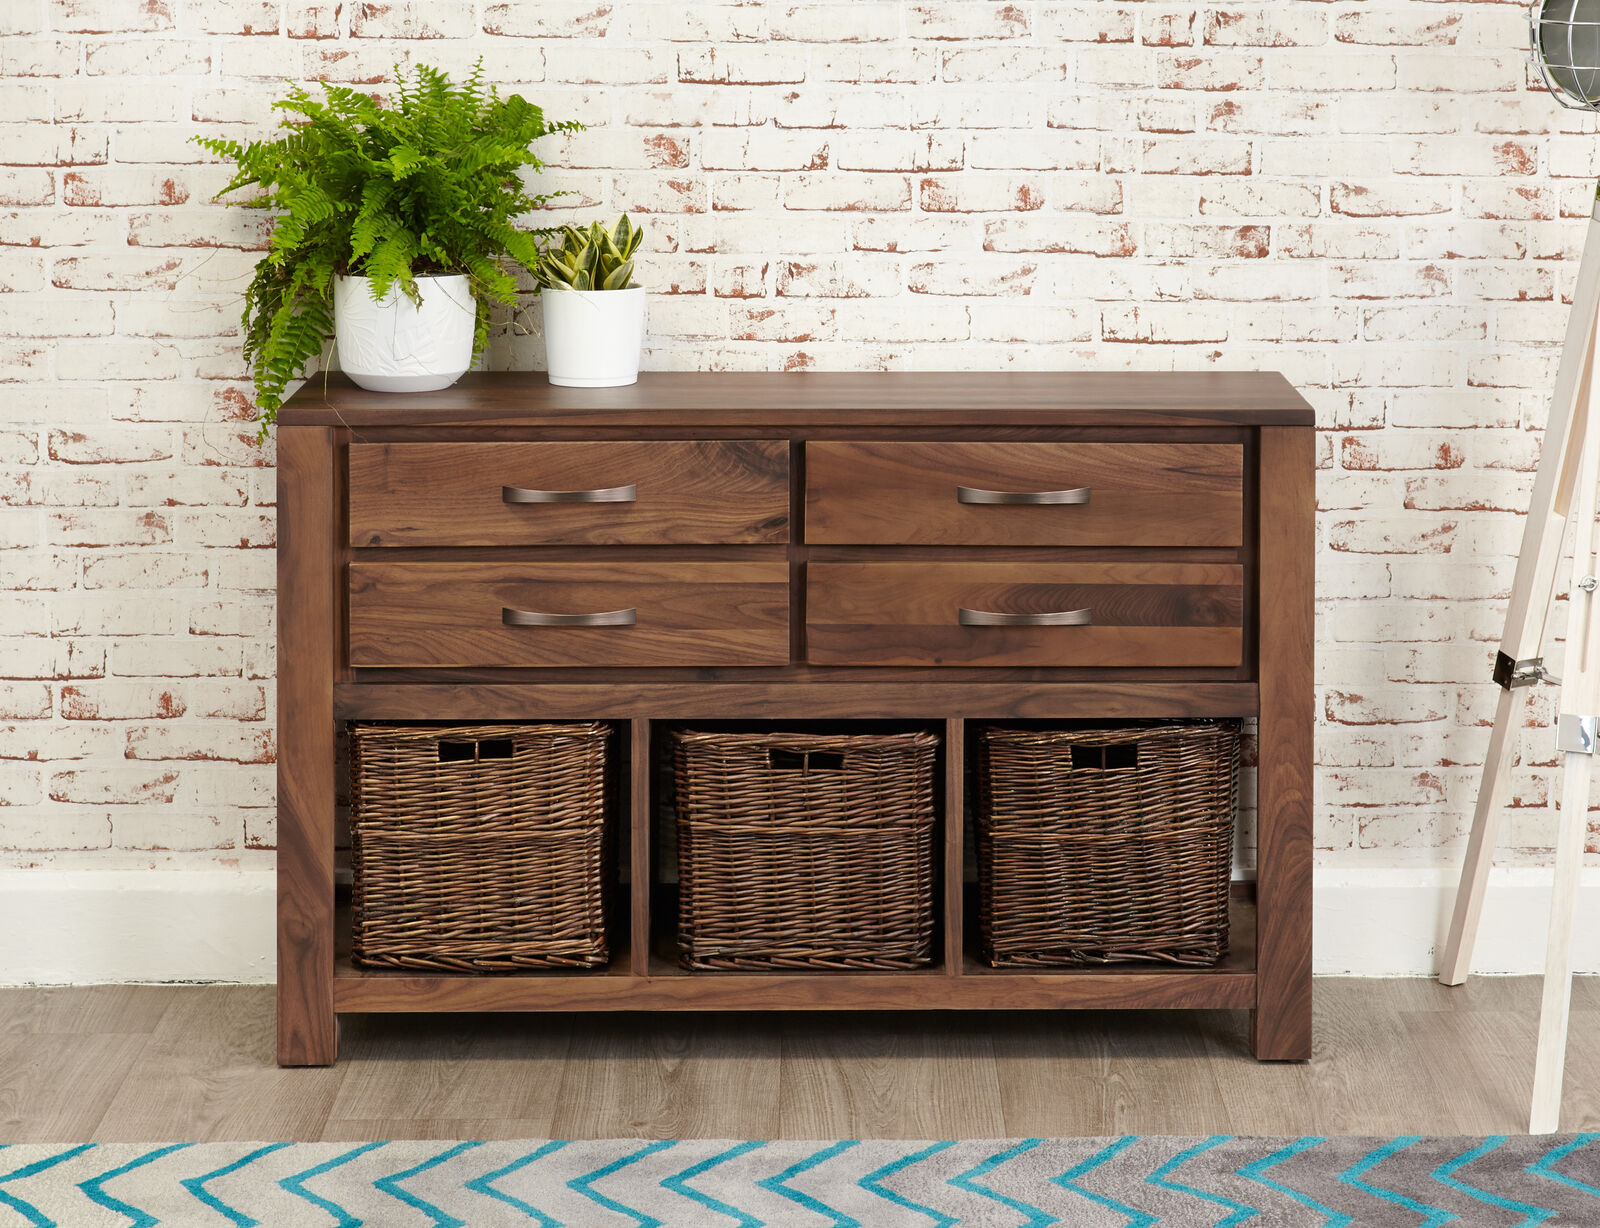 Details About Mayan Dark Wood Console Table 4 Drawers And Wicker Baskets Storage Solid Walnut